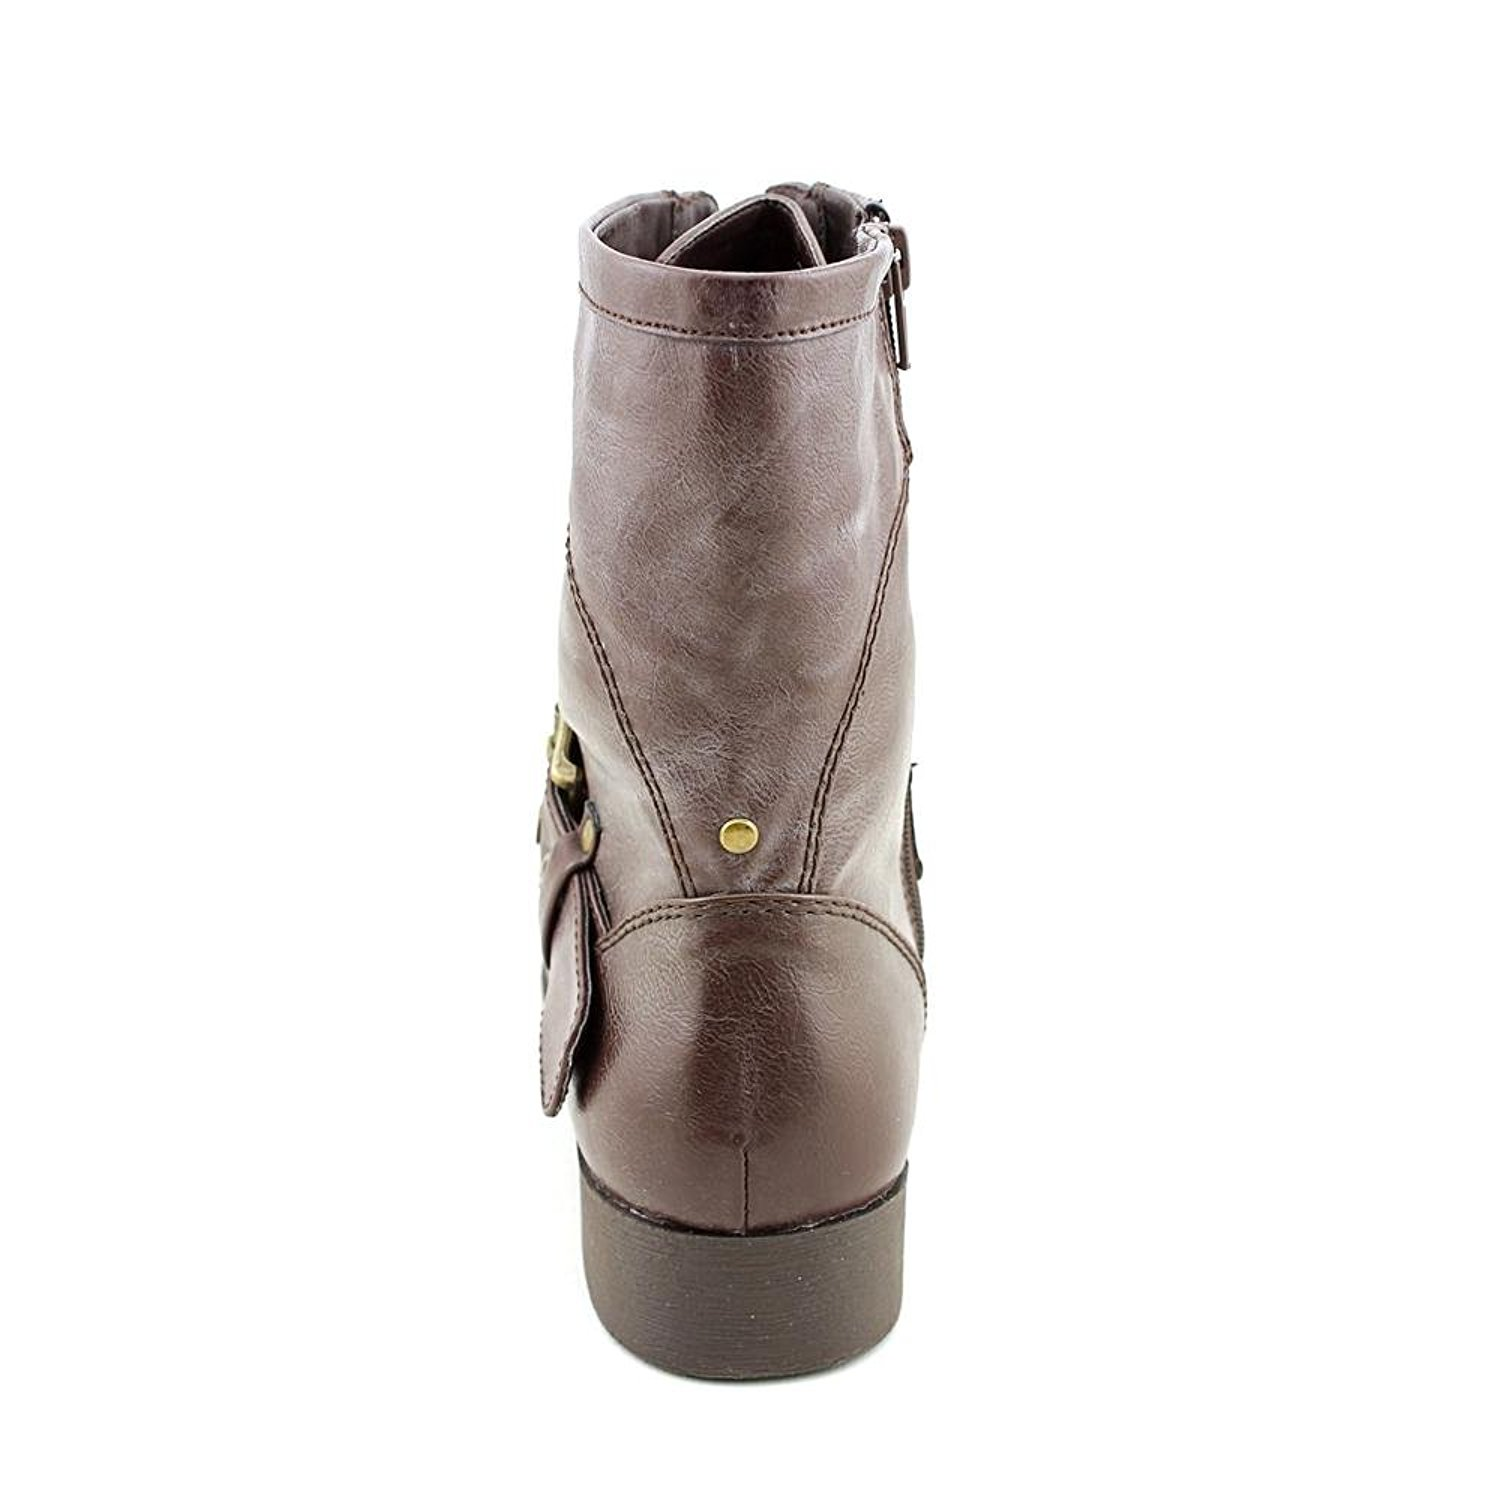 G By Guess Women Bleaker Dress Boots Dark Brown Size 5.5 22wO